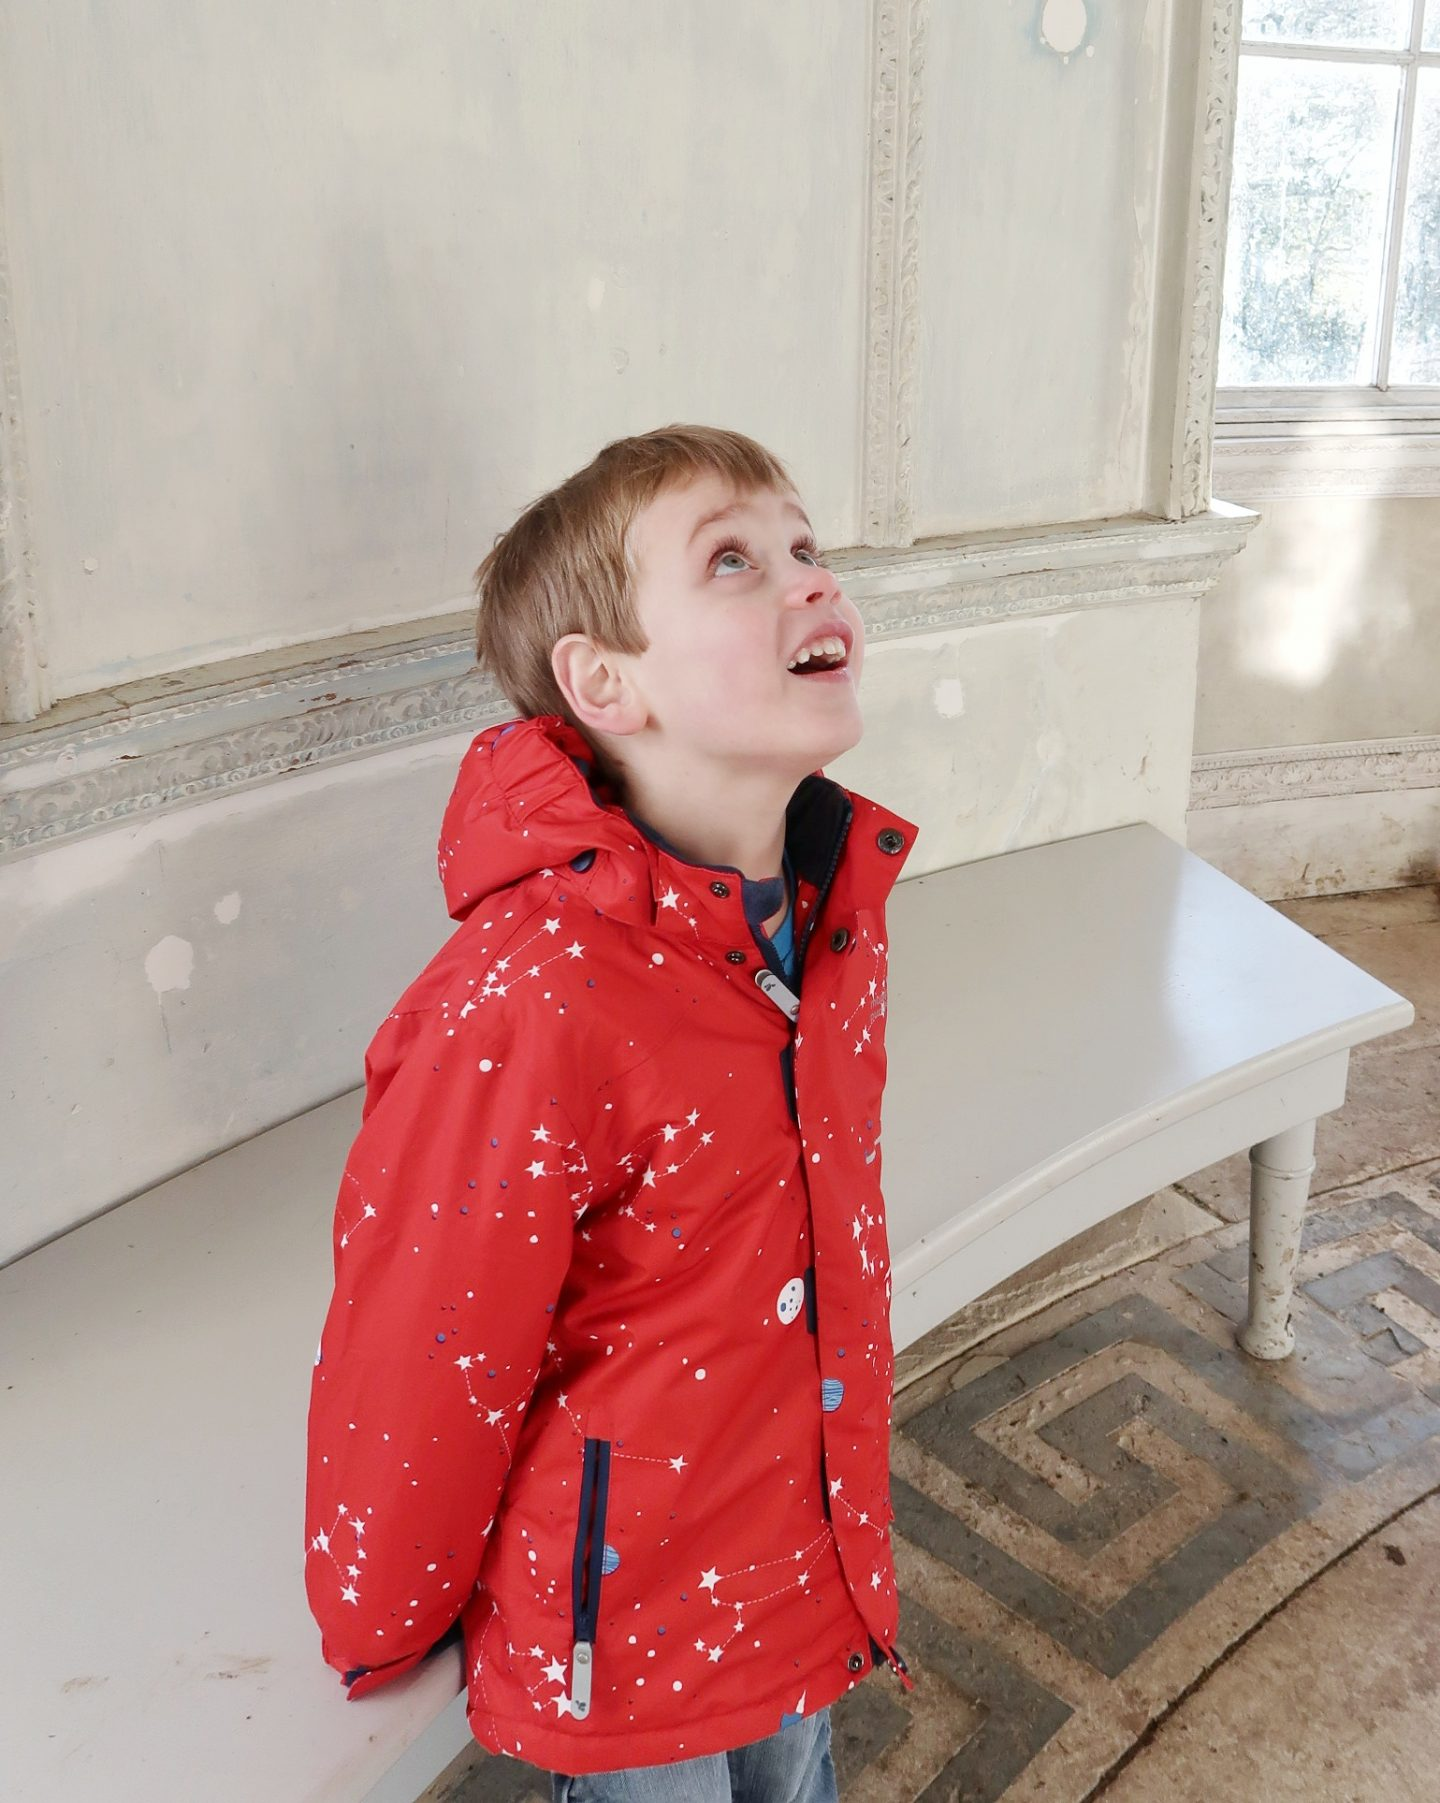 Small boy looking up at ceiling and smiling in the Rotunda at Croome - assumptions about autism